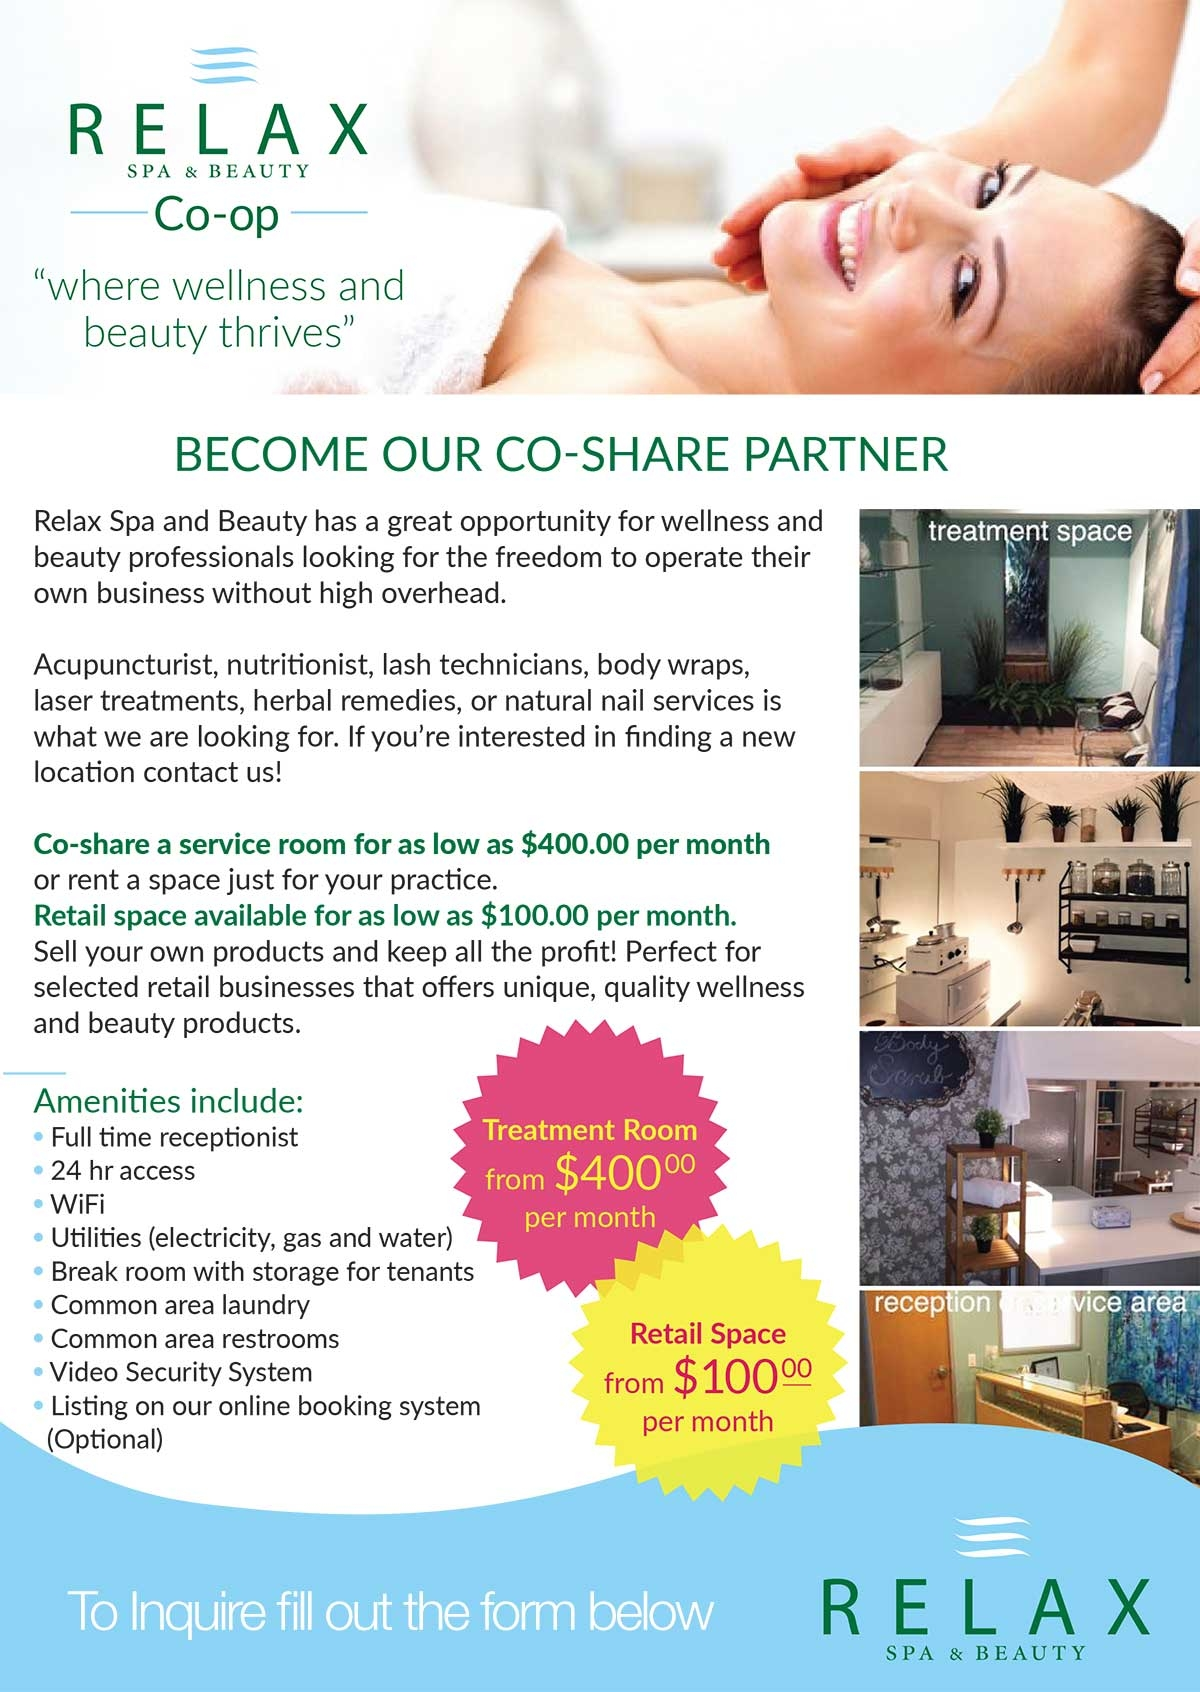 co-share-info-relax-spa-beauty